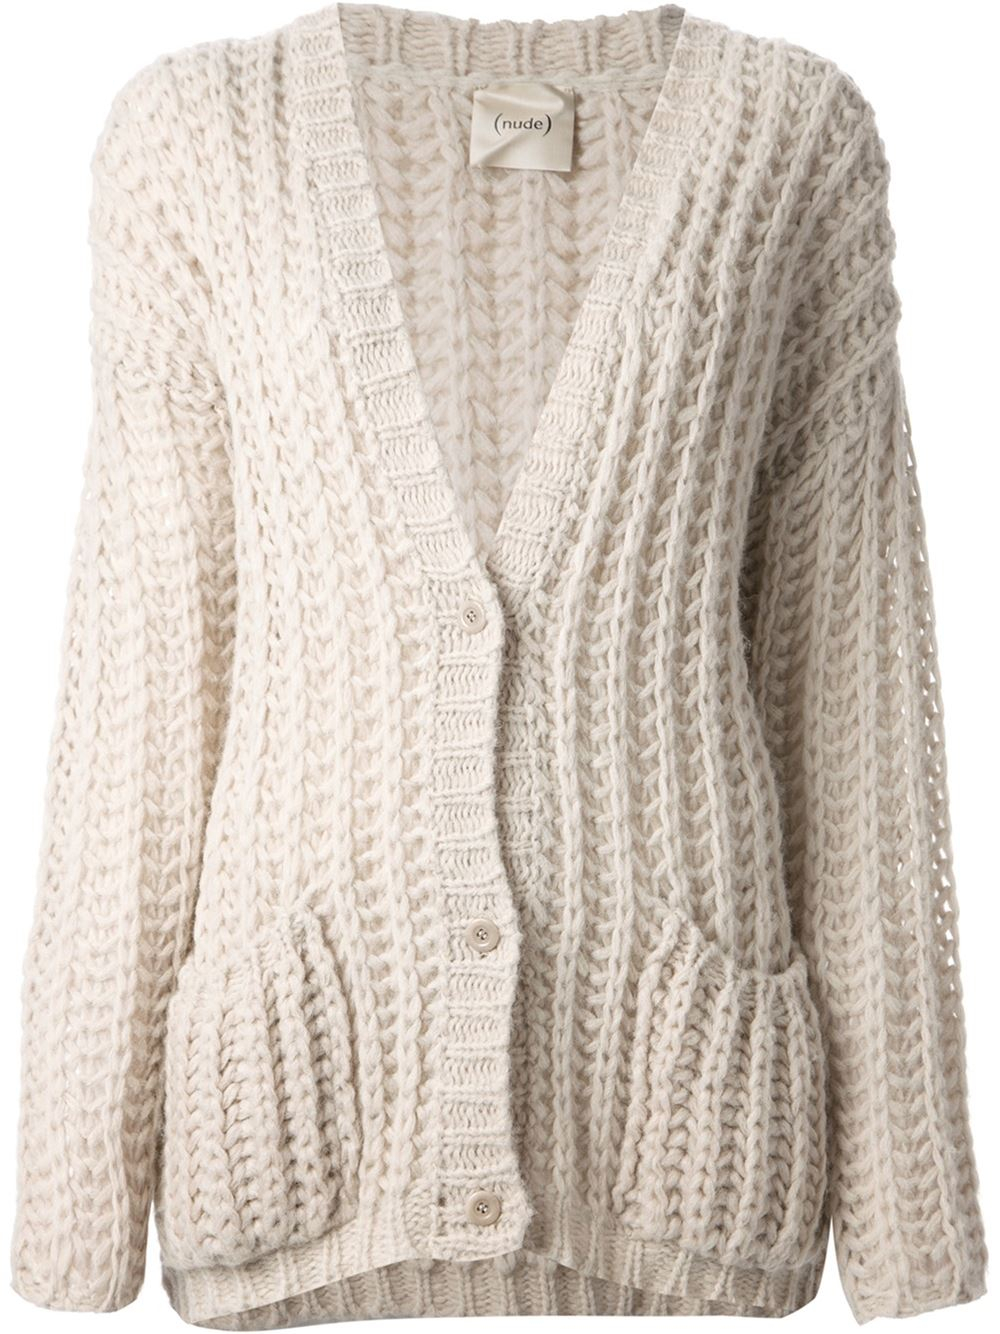 Nude Chunky Knit Cardigan in Natural | Lyst